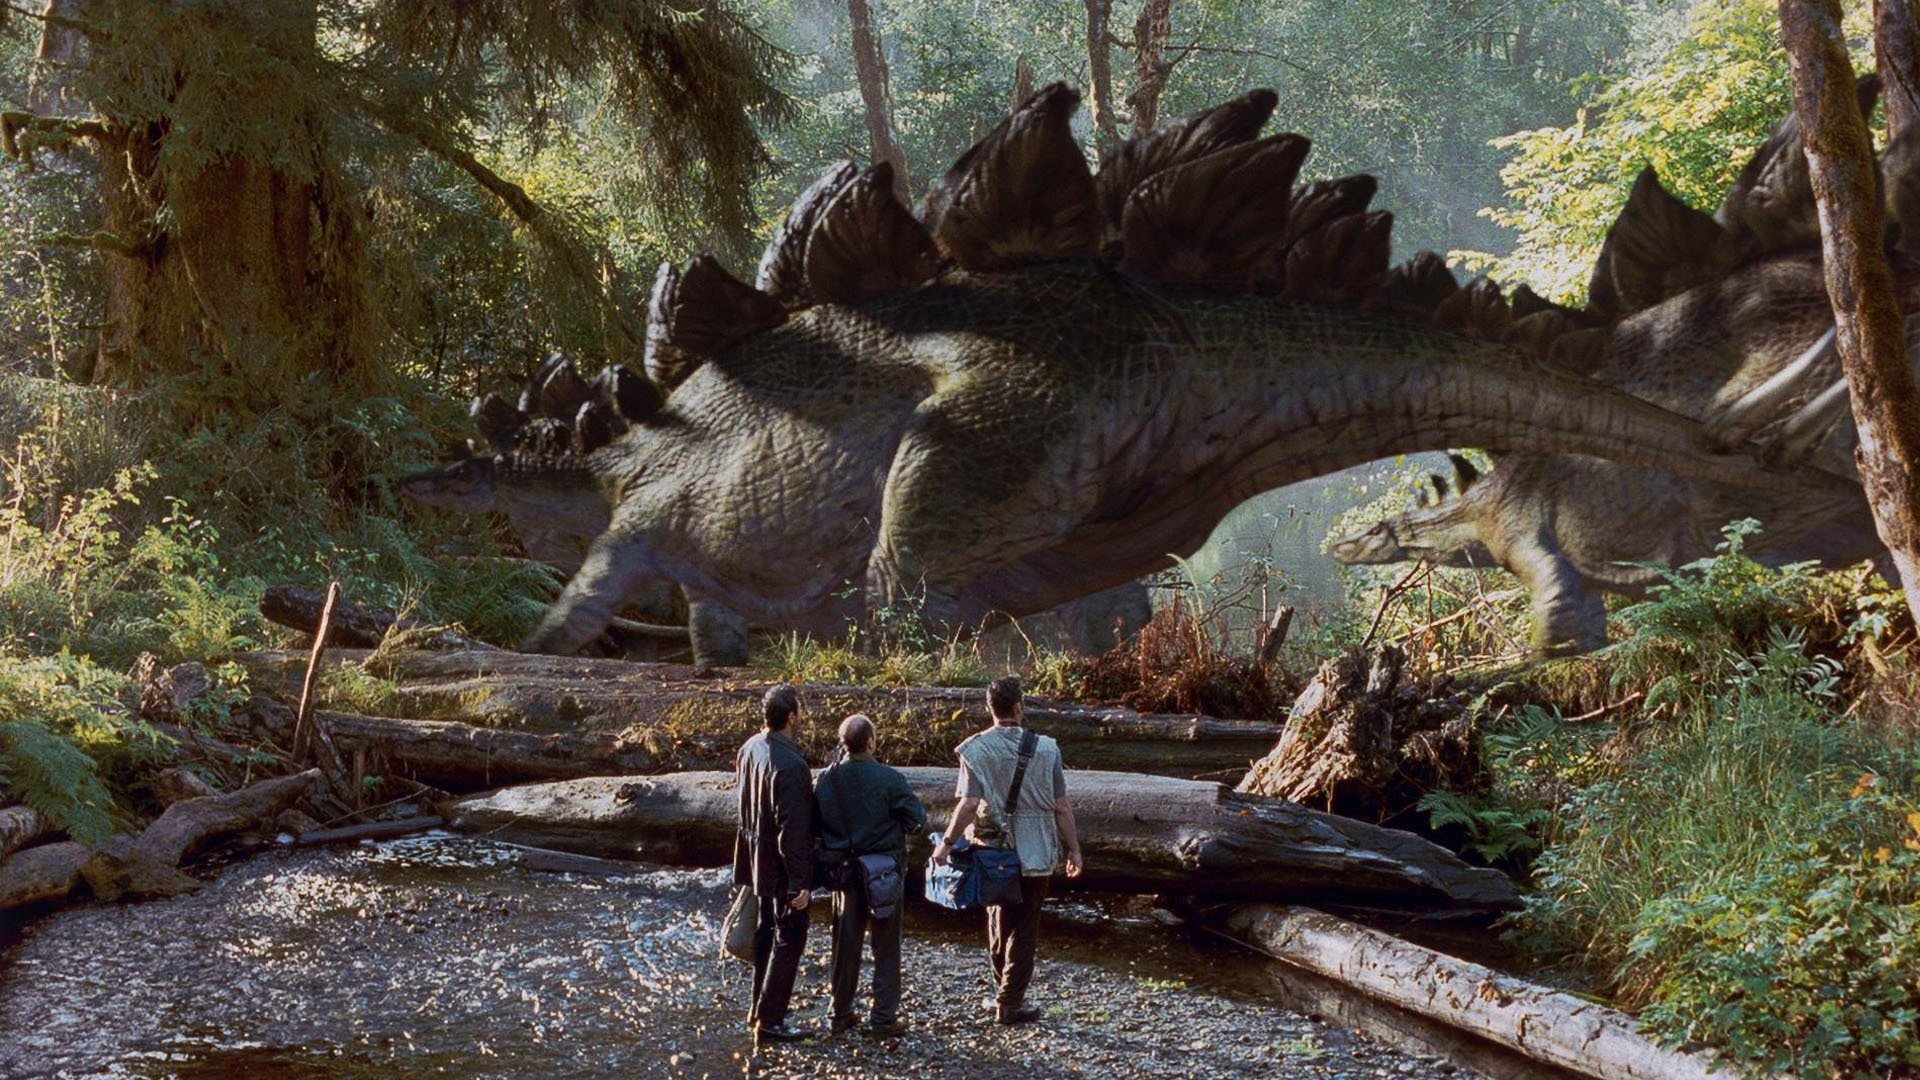 The party encounter a stegosaurus in The Lost World: Jurassic Park (1997)